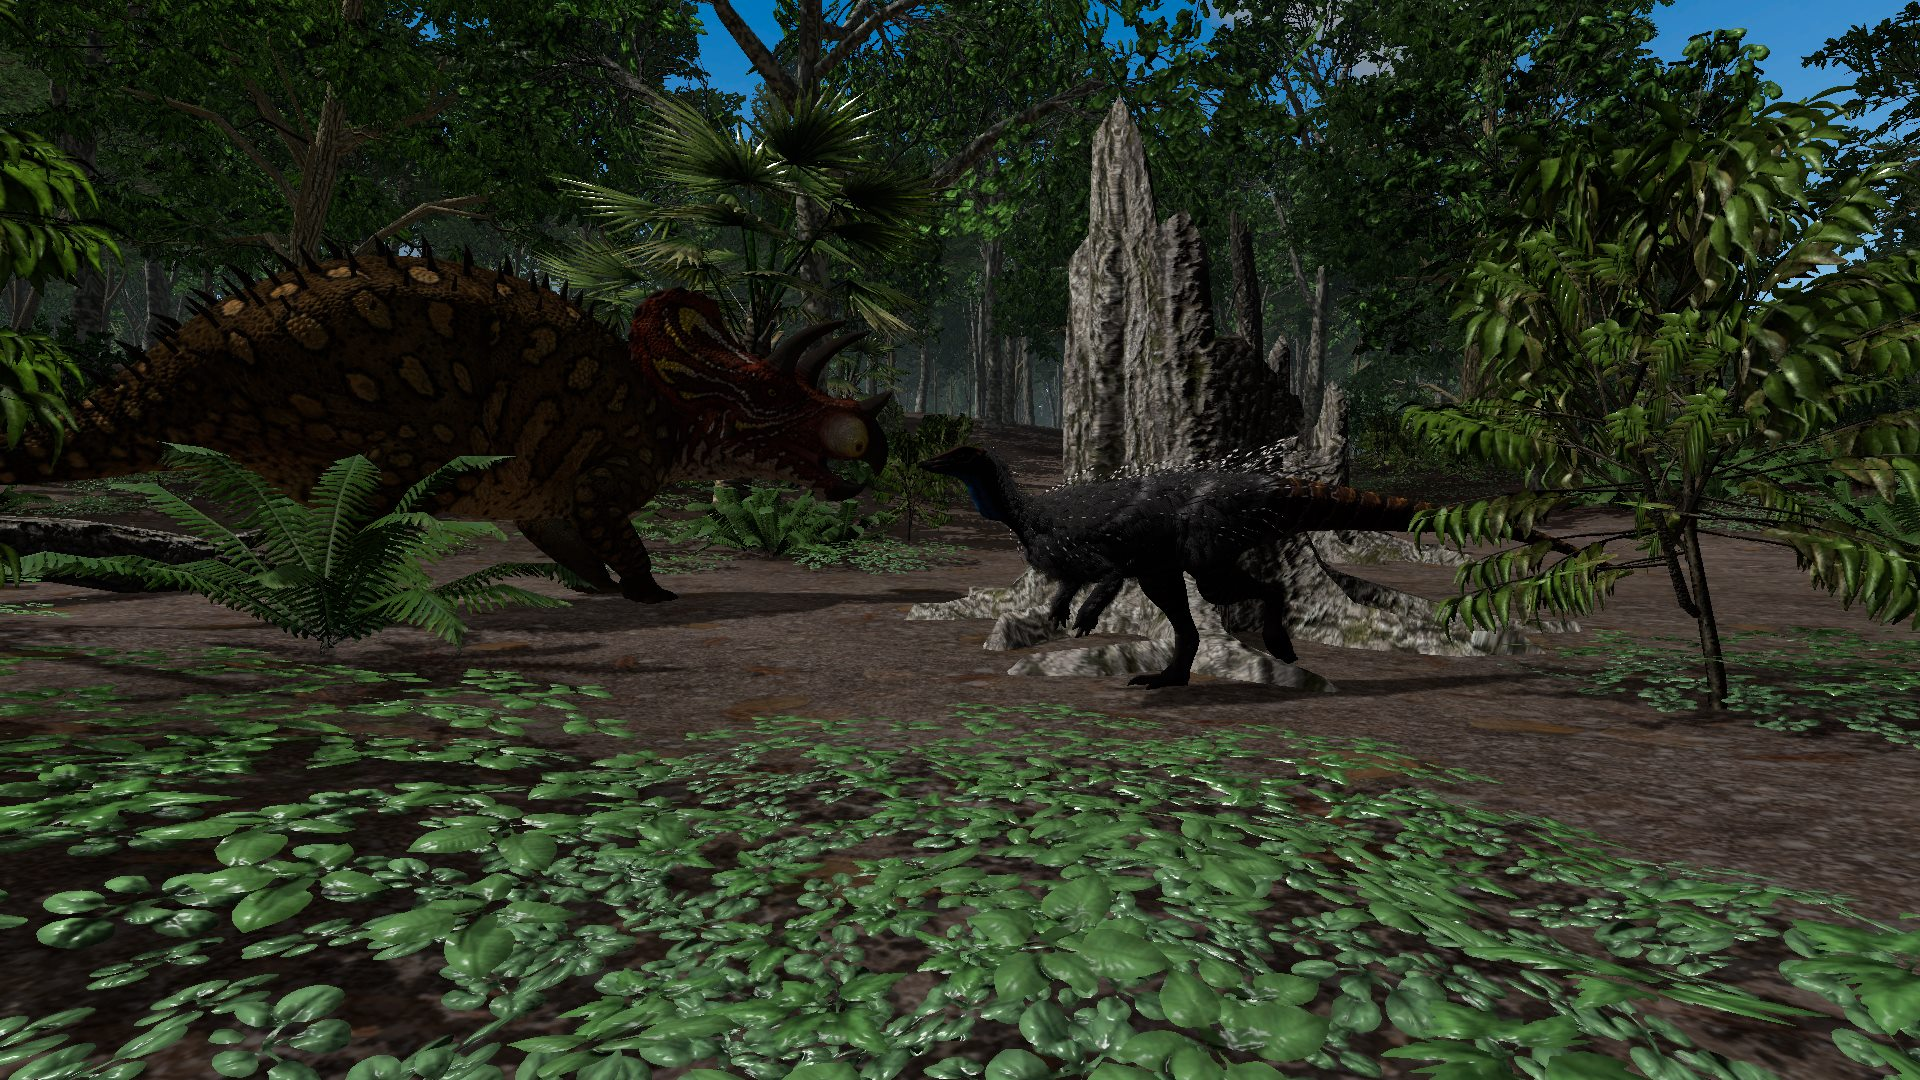 Triceratops in Saurian